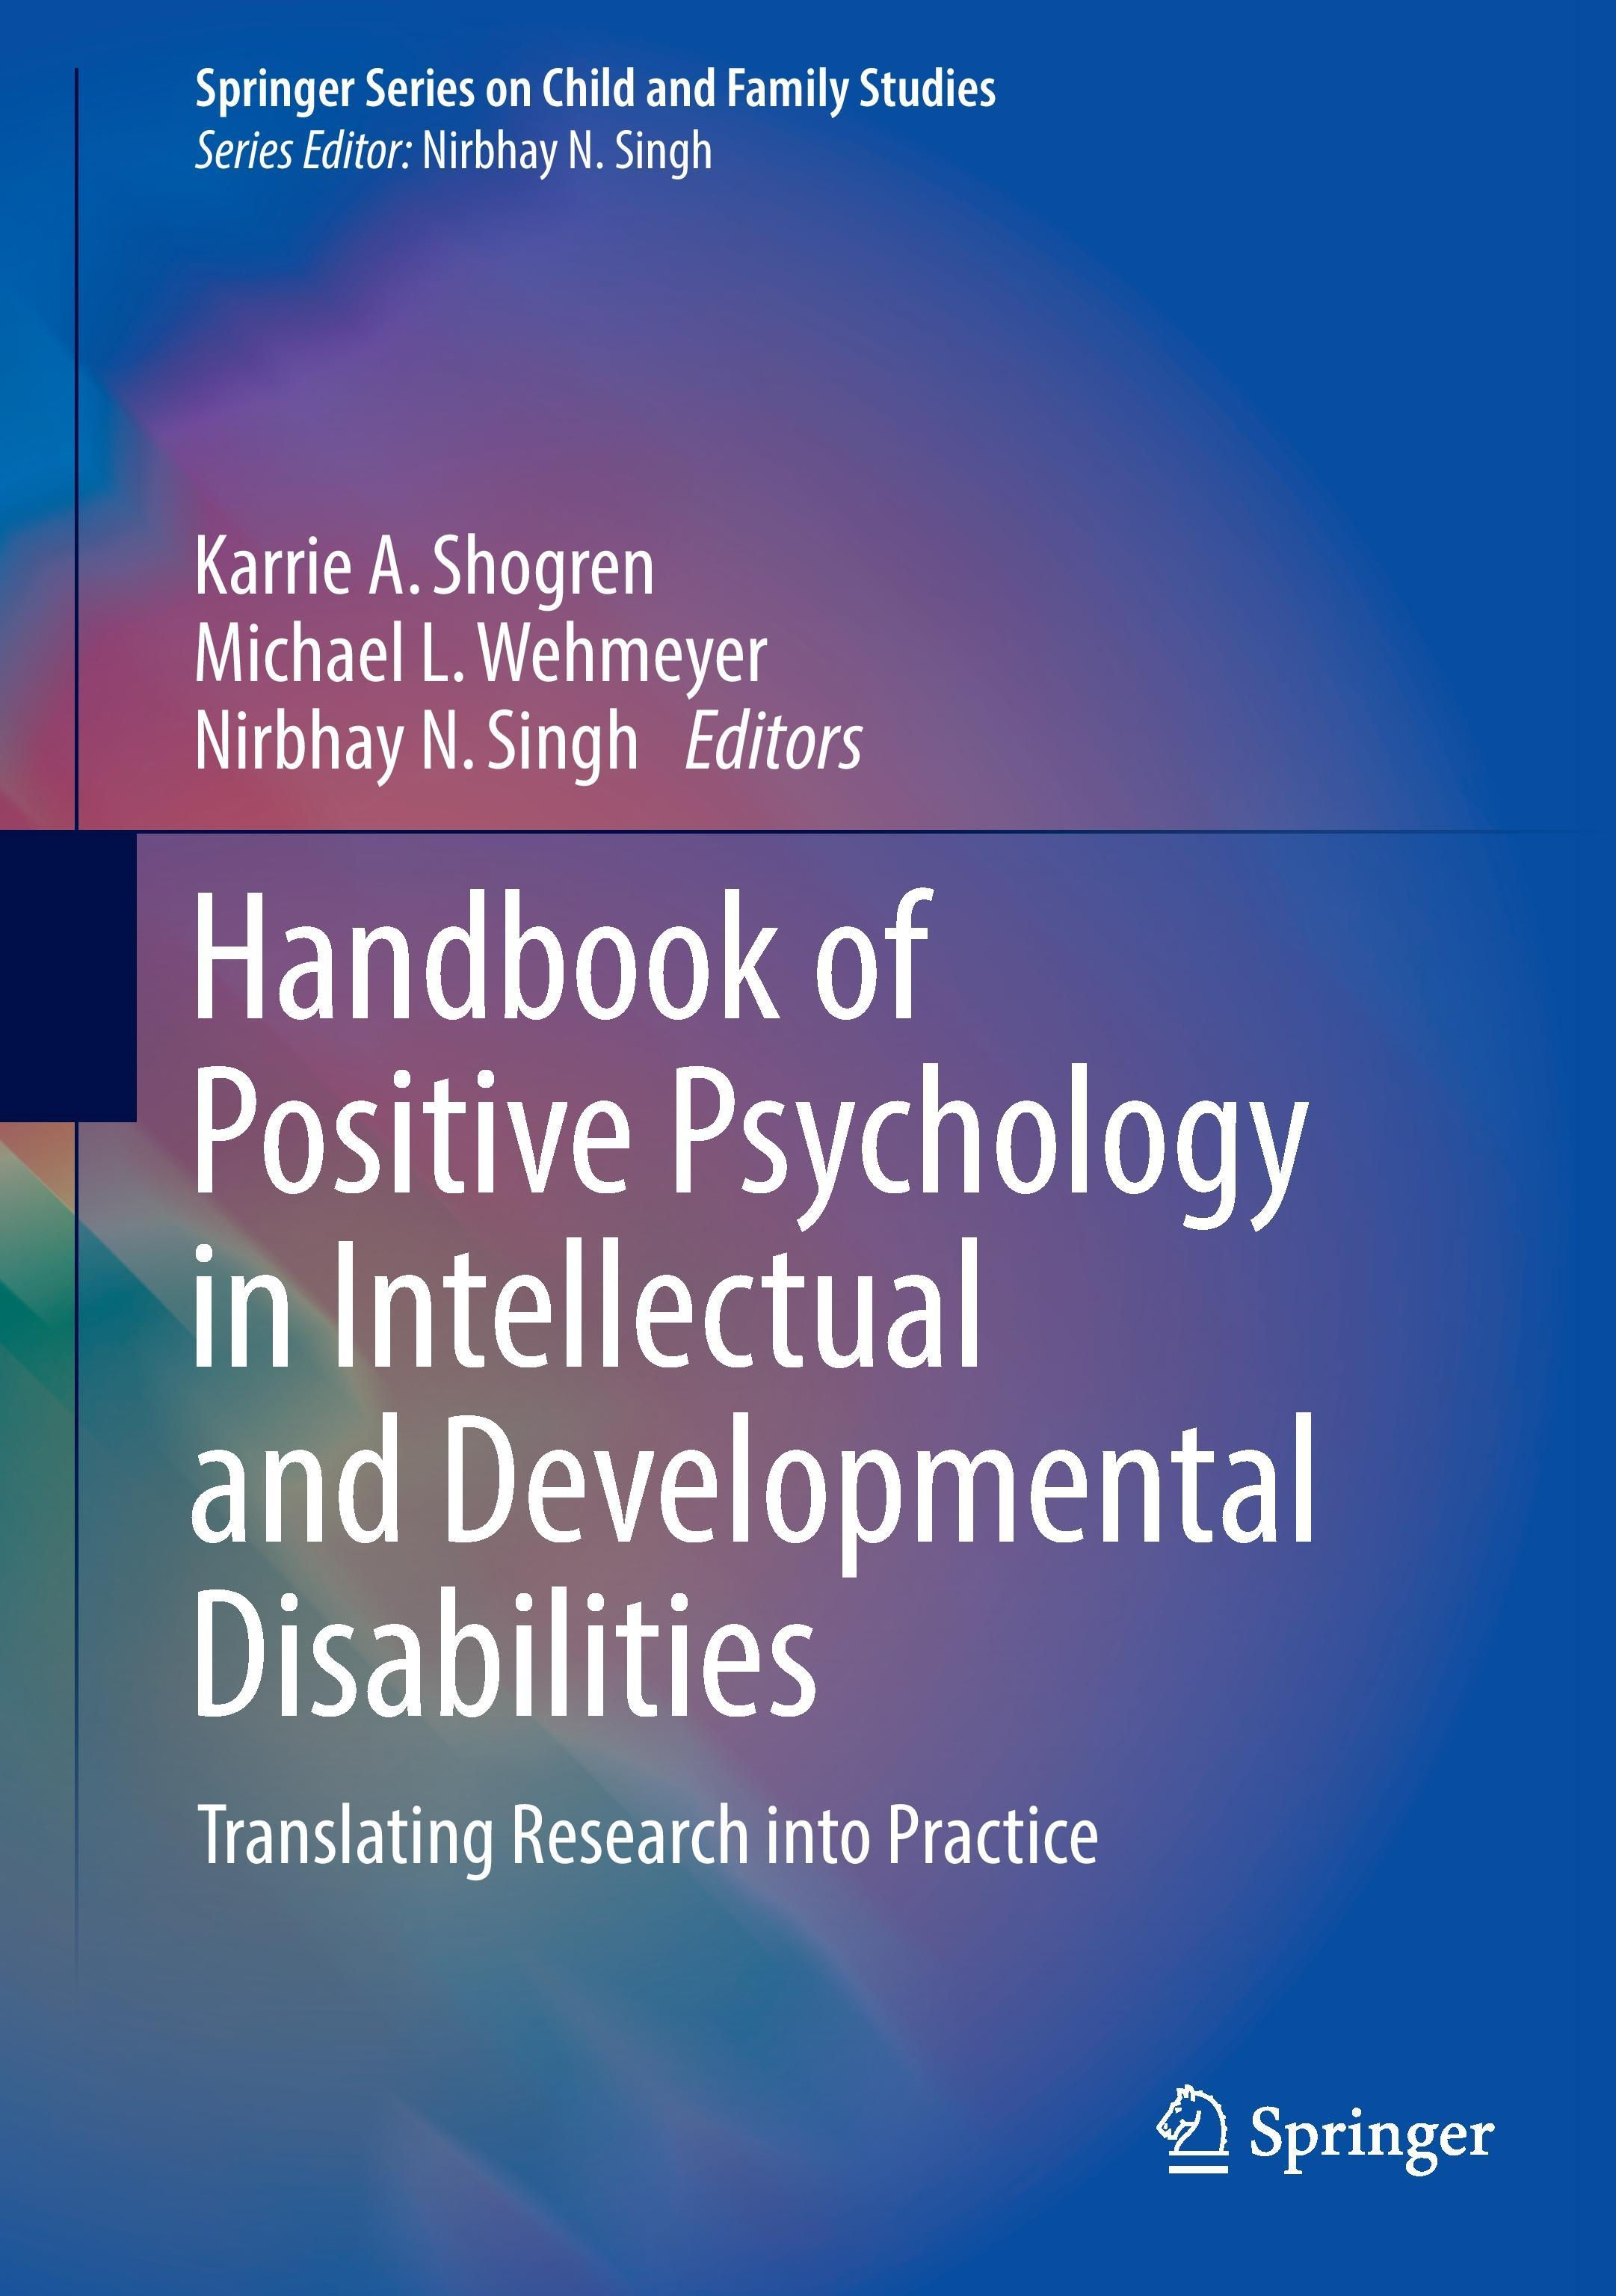 Handbook-of-Positive-Psychology-in-Intellectual-and-Developmental-Disabilit